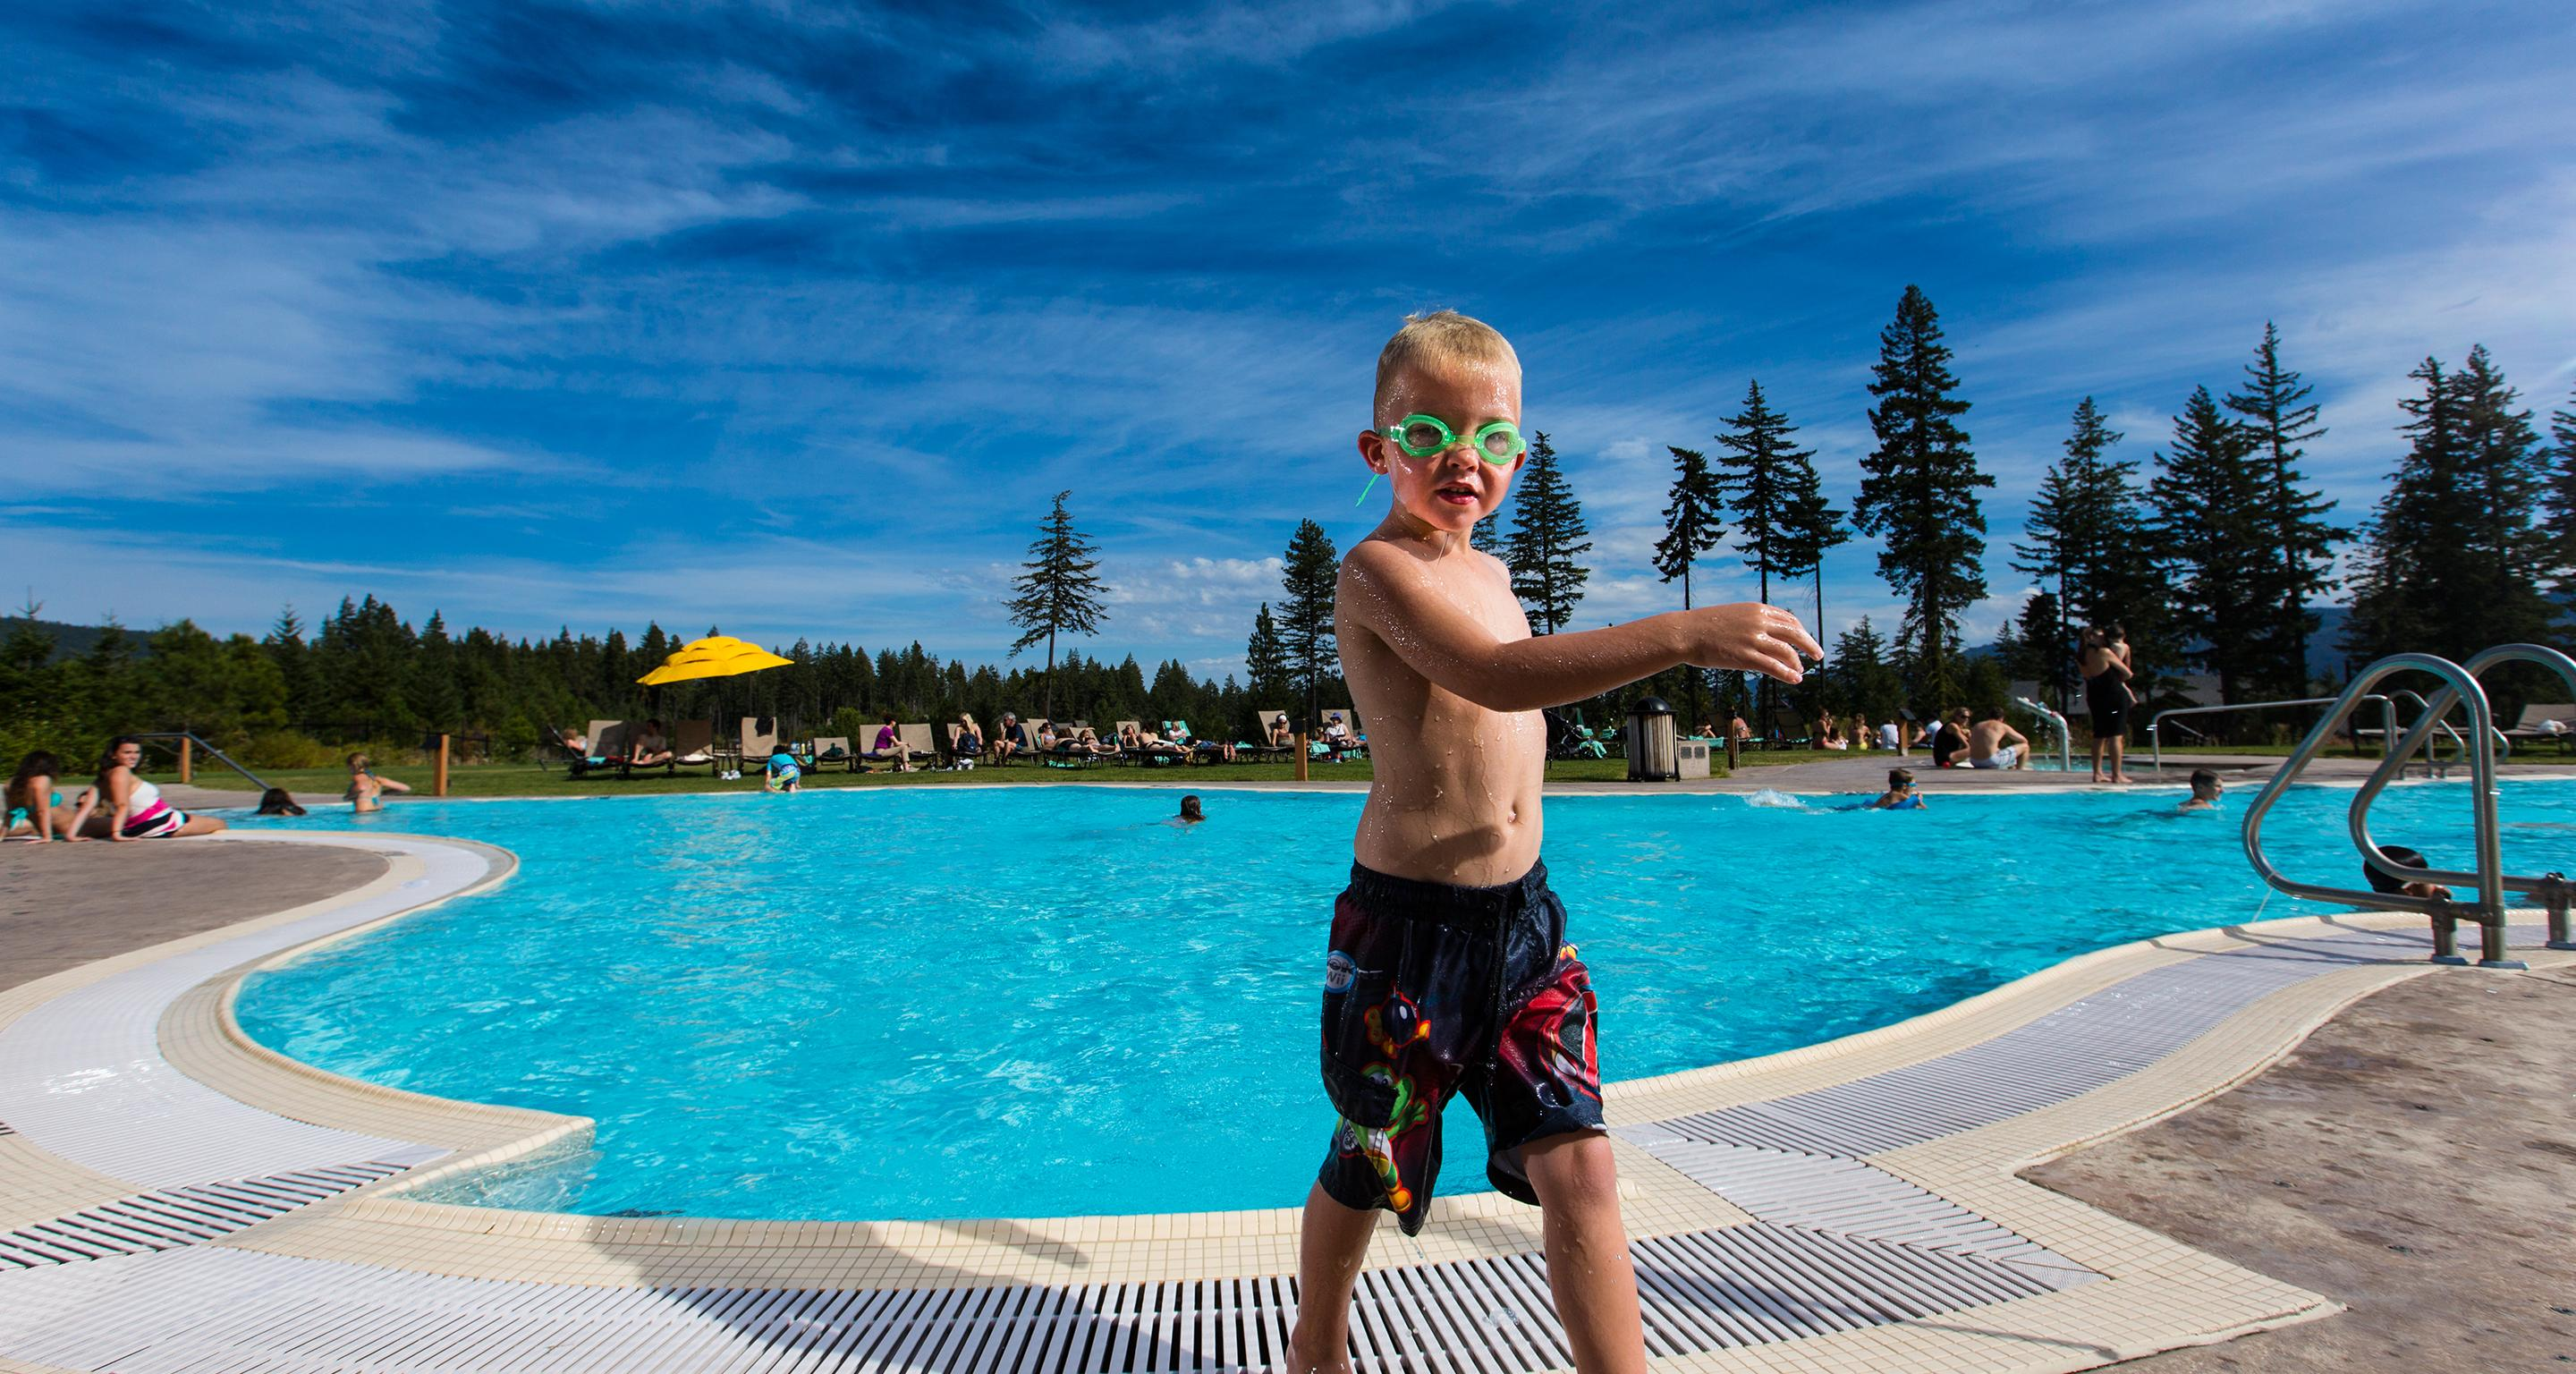 CampCadia makes use of the resort's fun activities – including the pool!